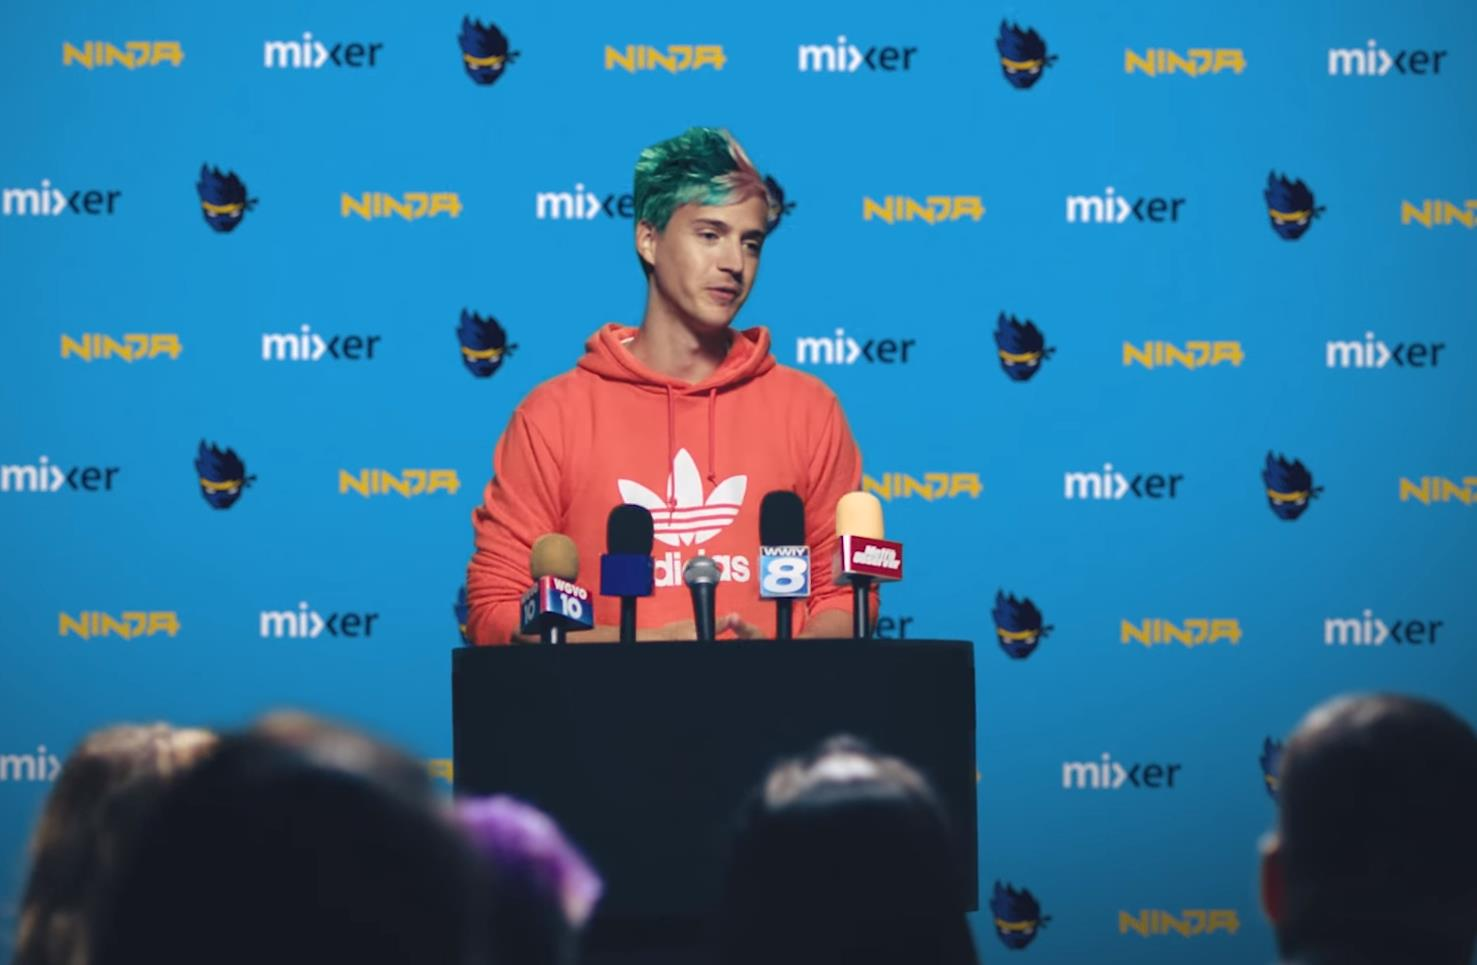 Ninja Leaving Twitch Could Shake up the Streaming Industry for Good